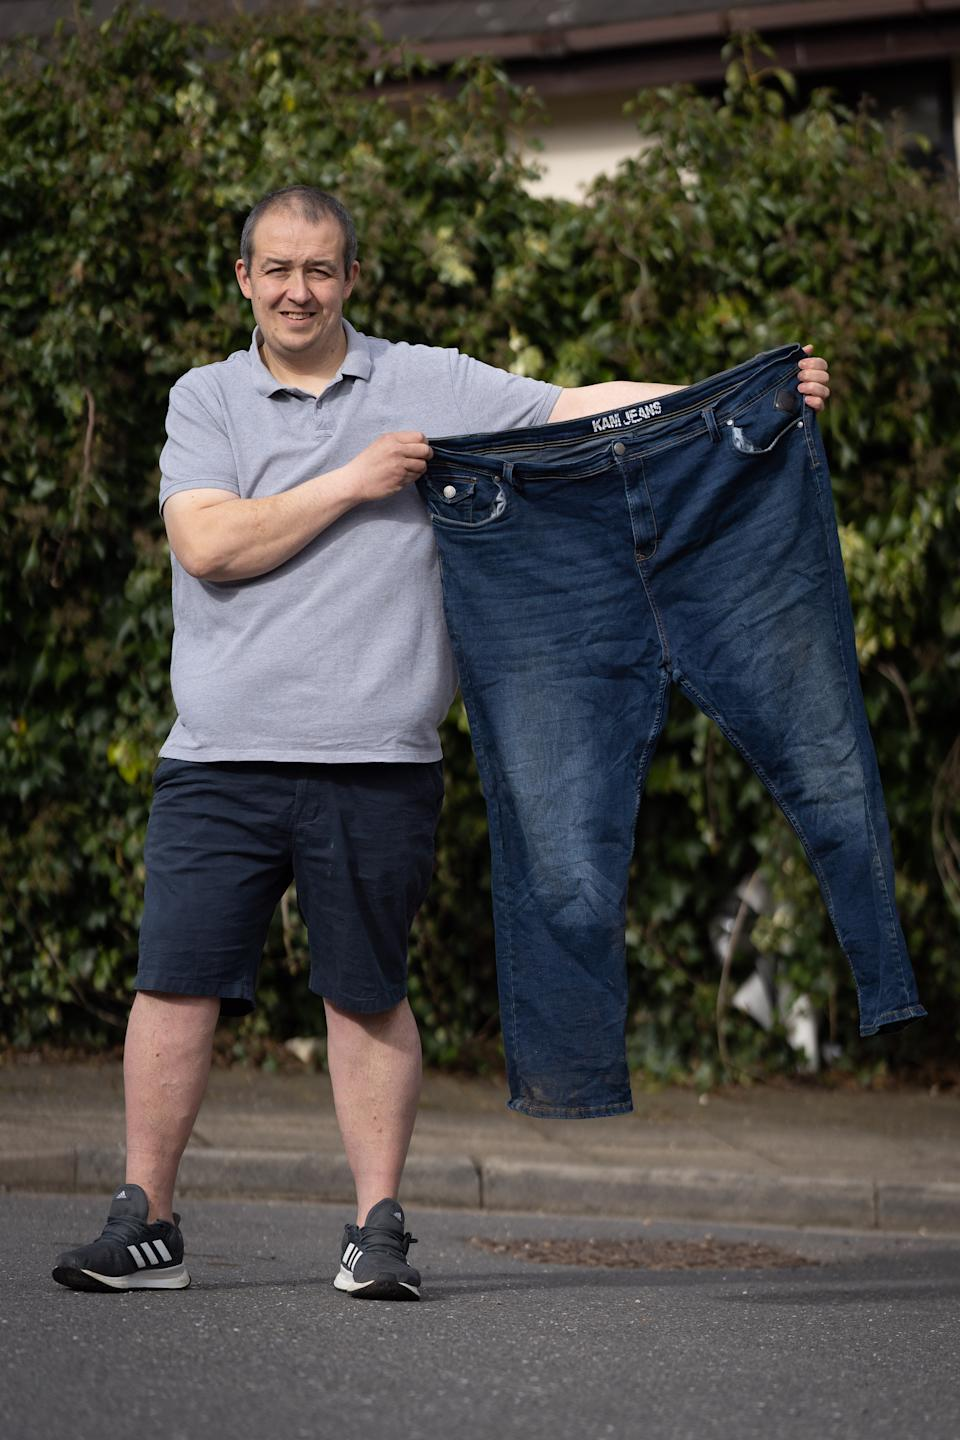 Matthew Howe lost a staggering 10 stone in weight in just six months. (SWNS)